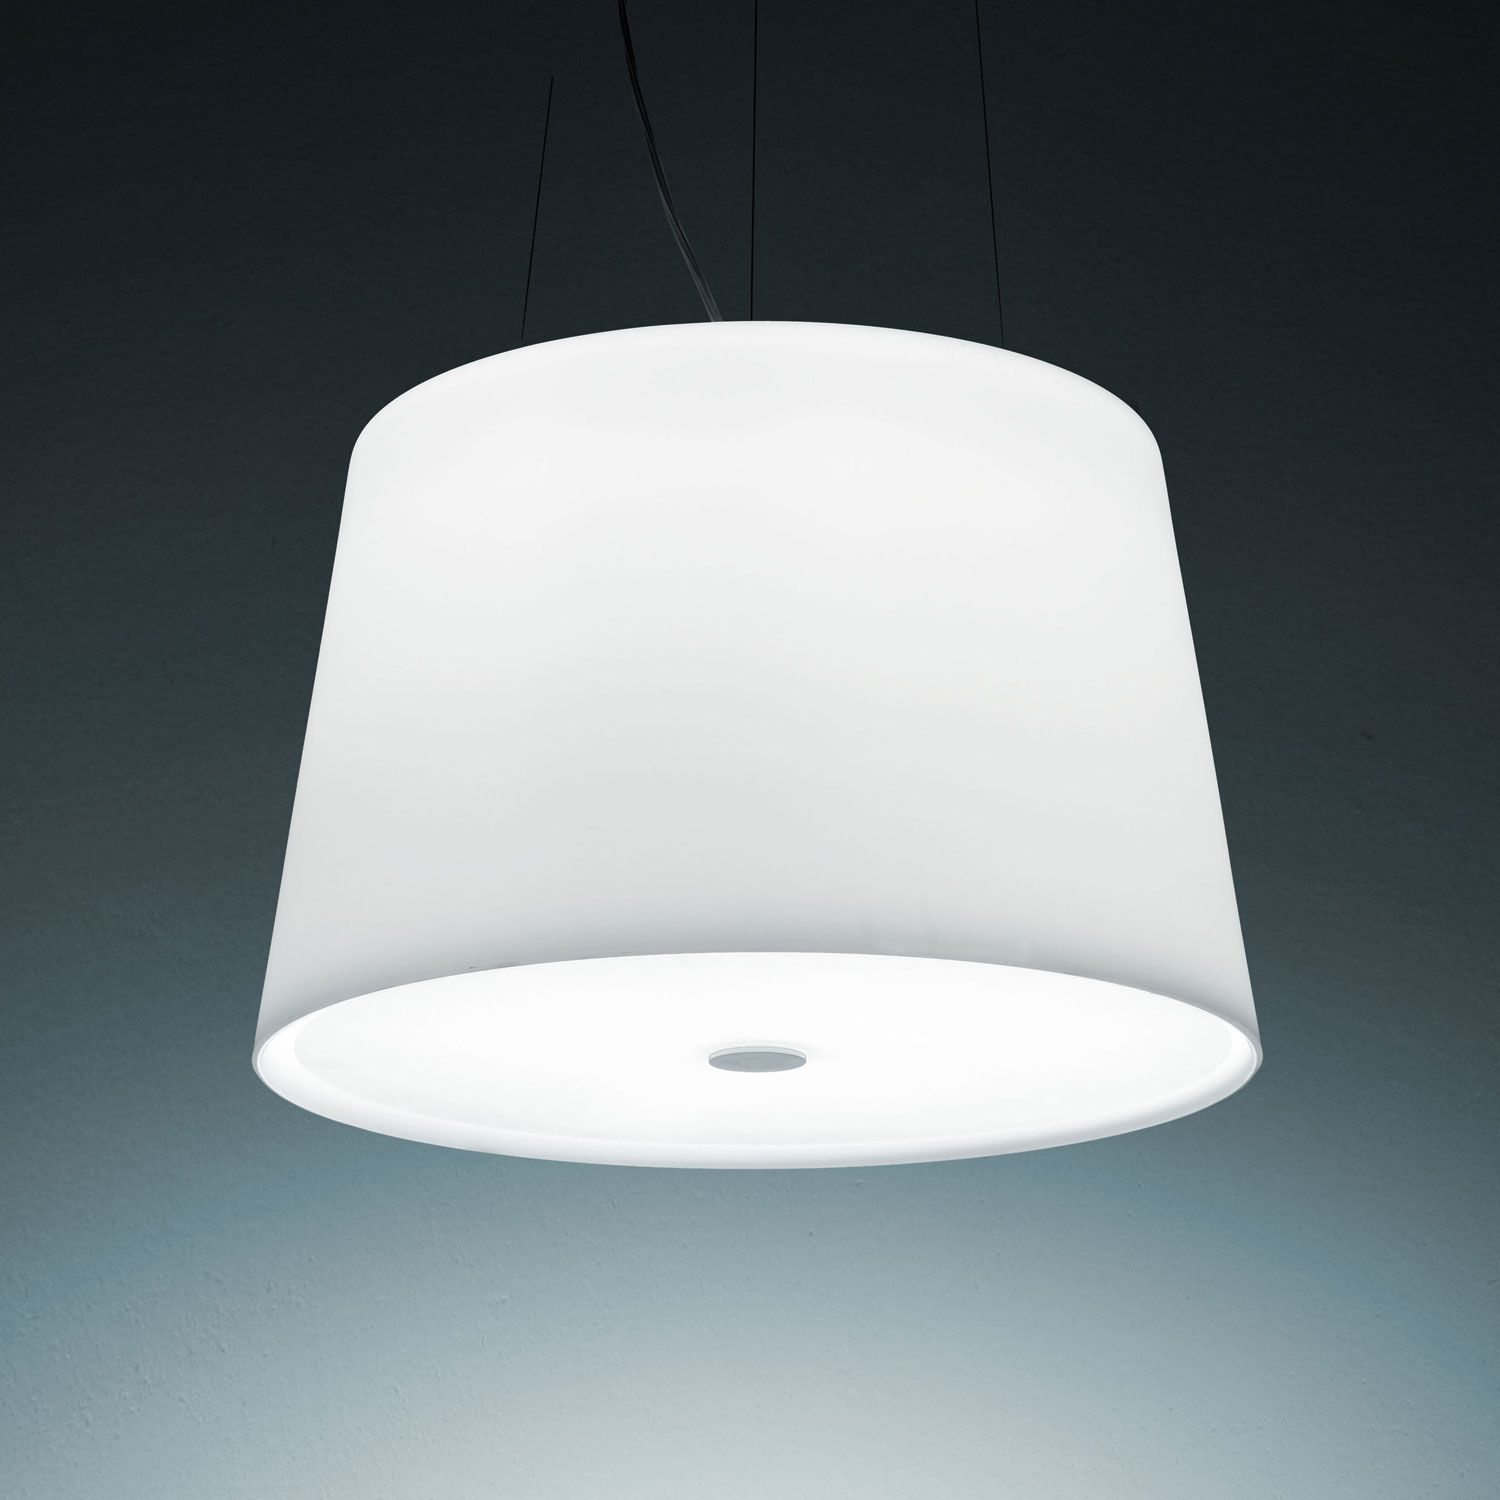 passion lighting. Passion (lighting):Suspension Lamp. Diffuser And Lower Disk In Blown Opal Glass Lighting L